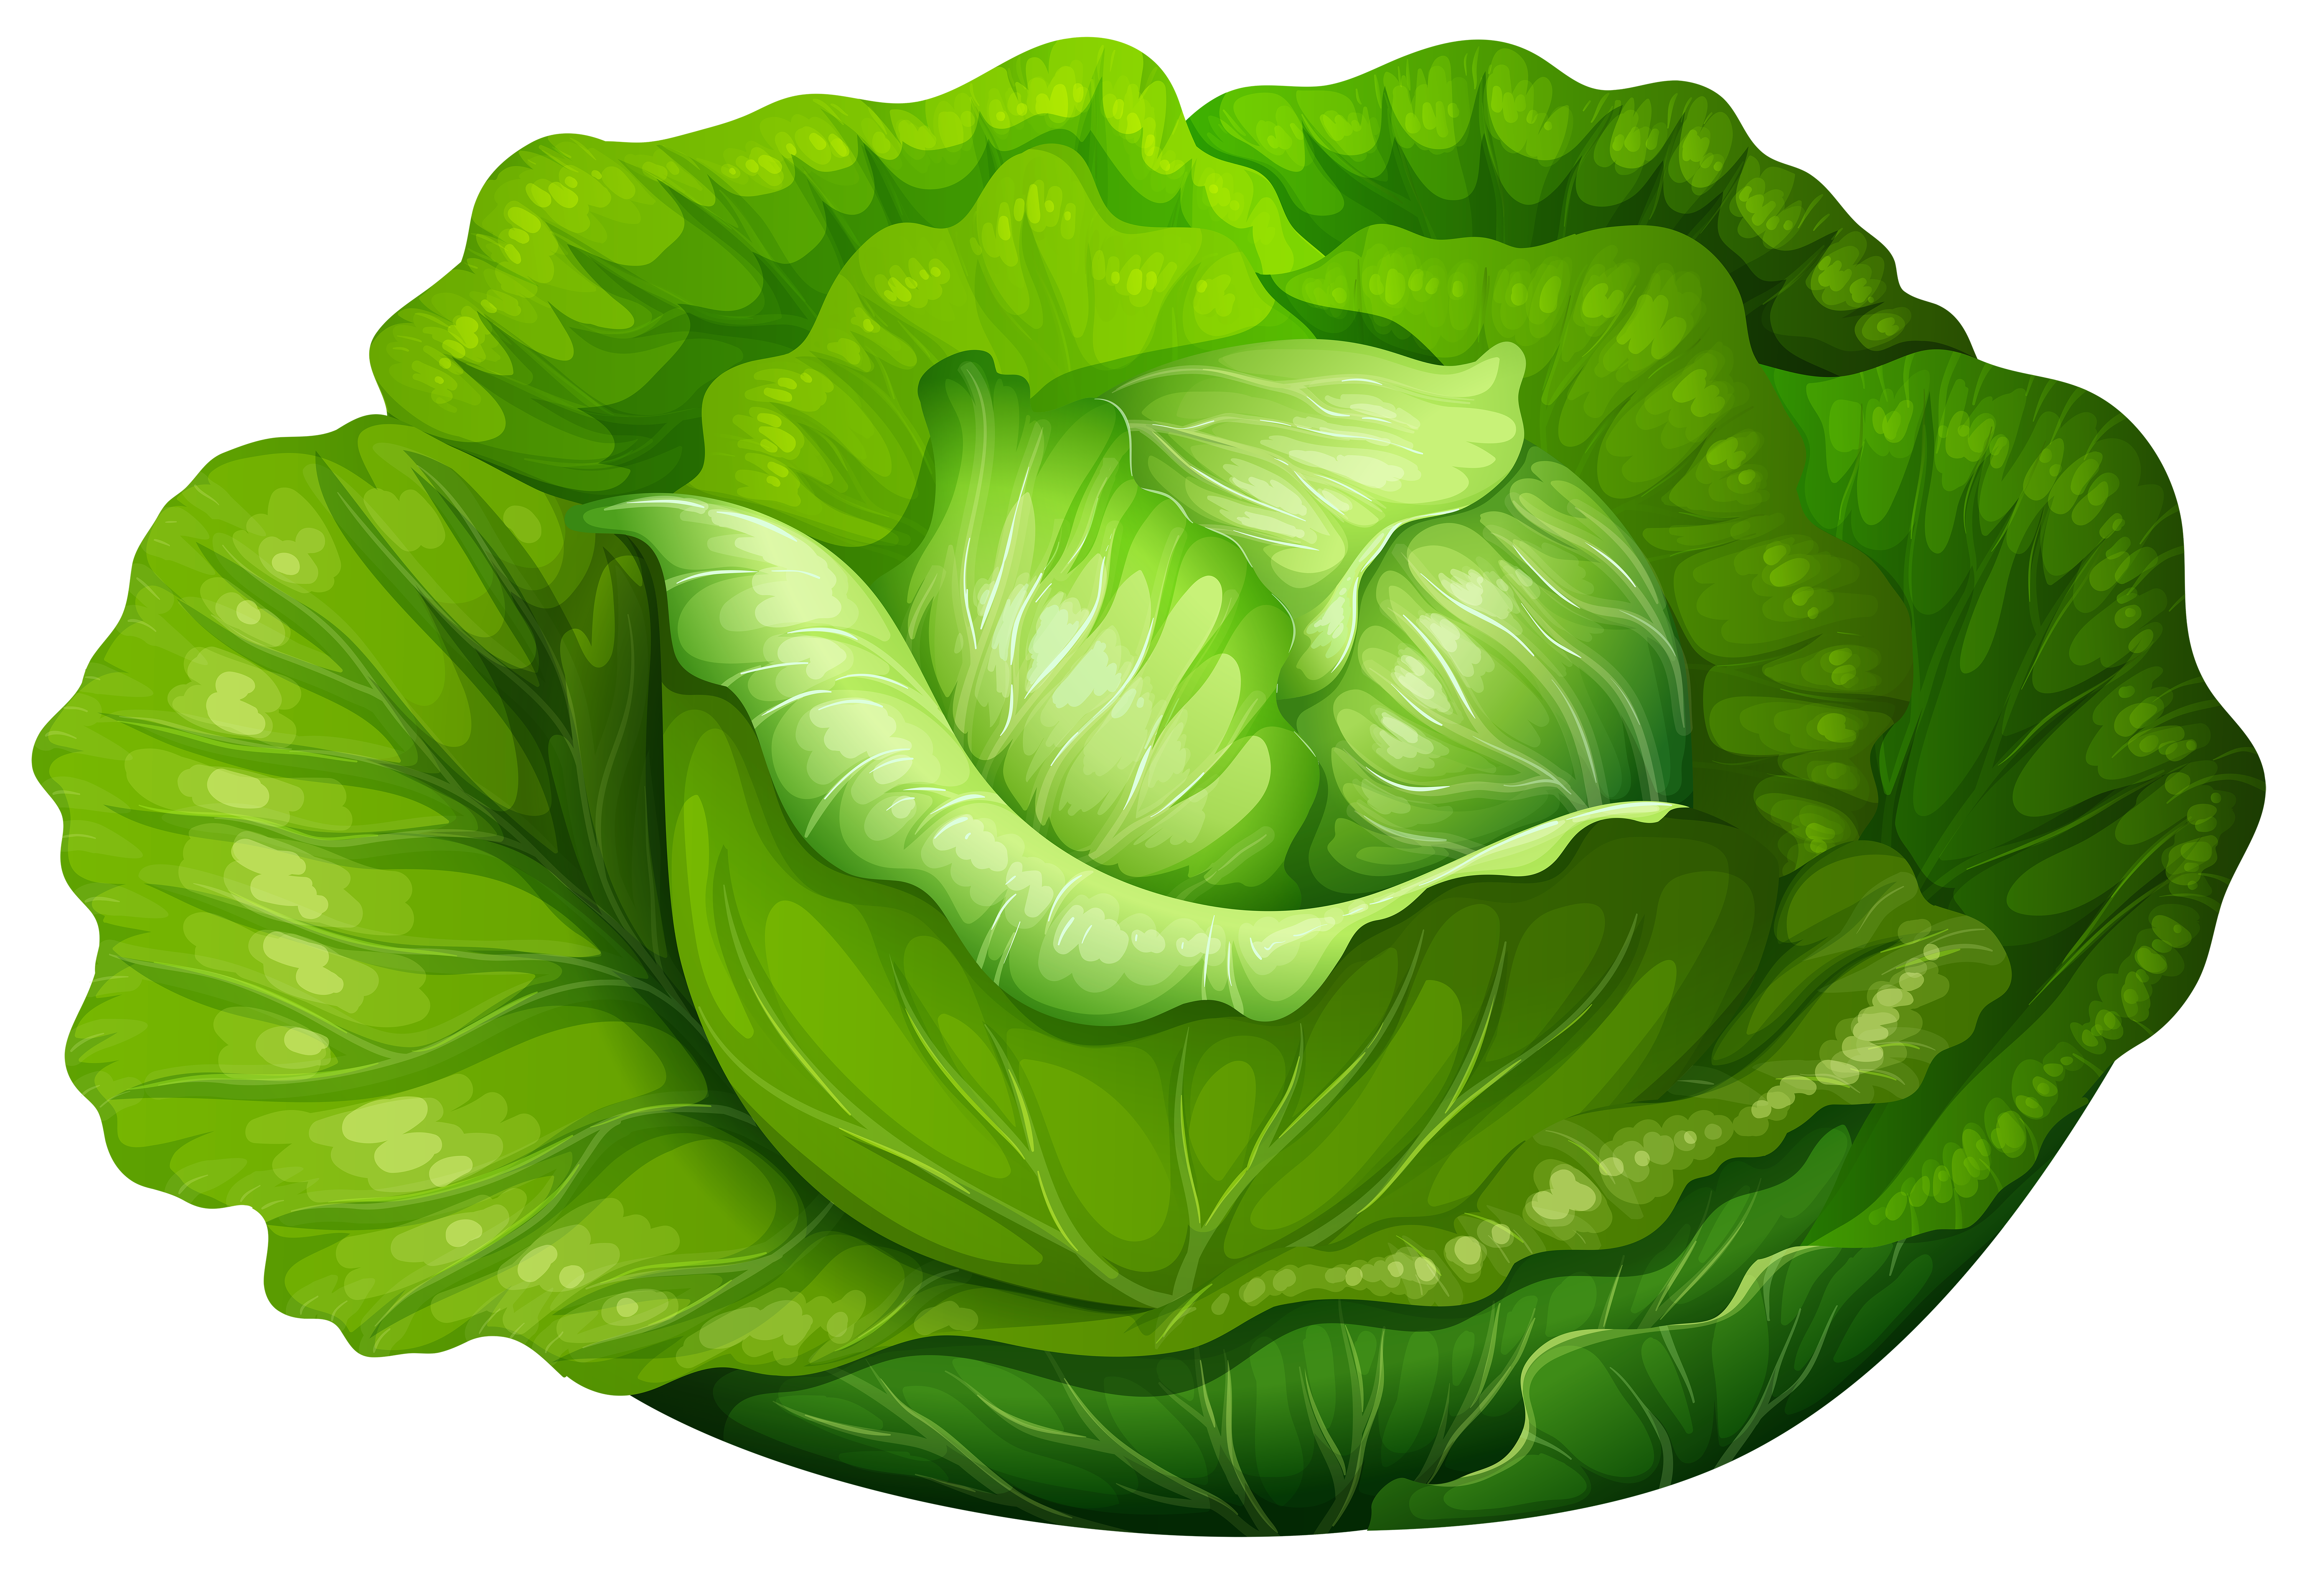 Cabbage clipart Collection clipart Cabbage Cabbage free